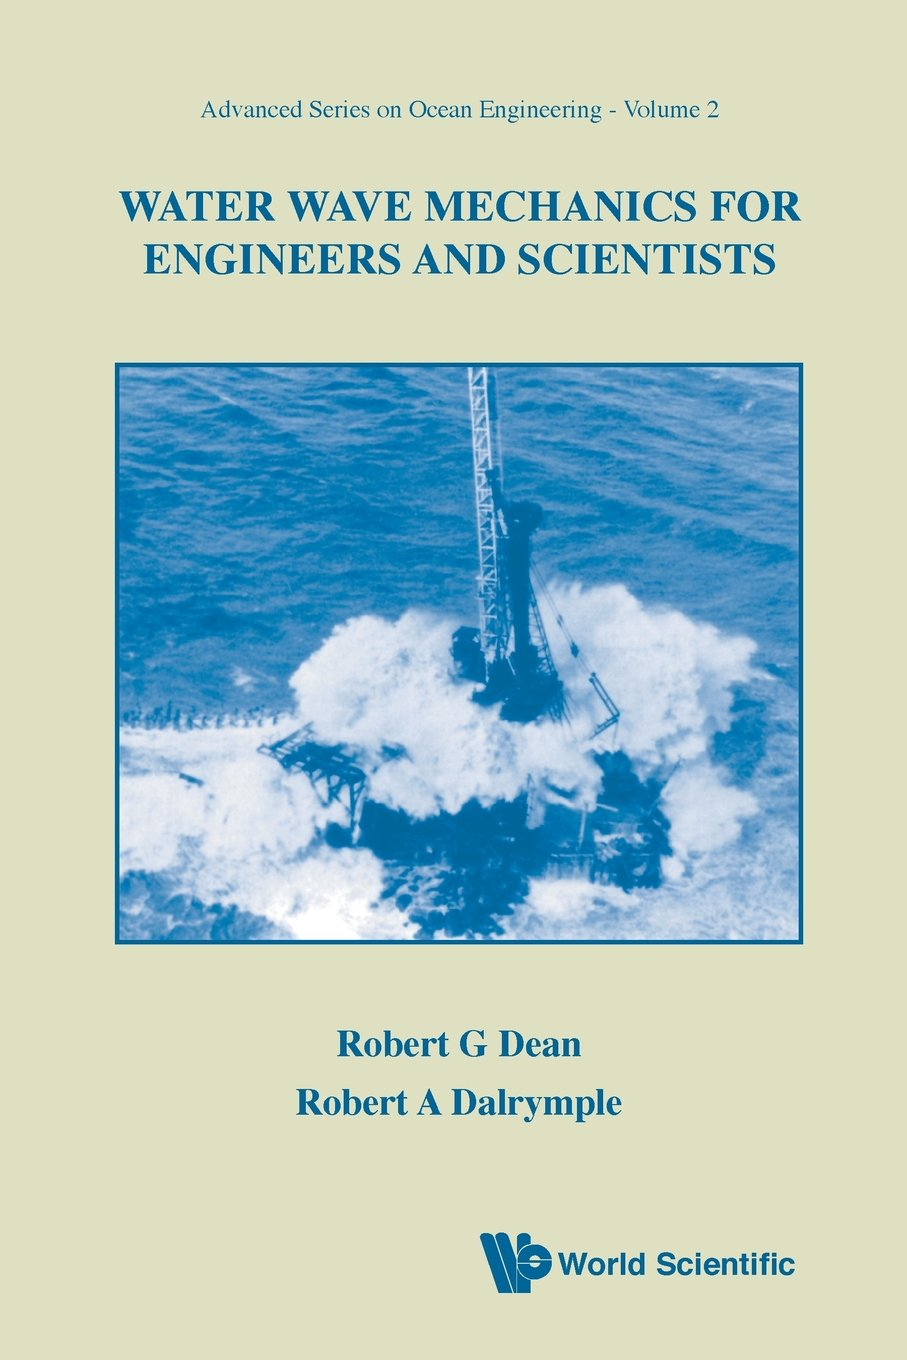 Water wave mechanics for engineers and scientists